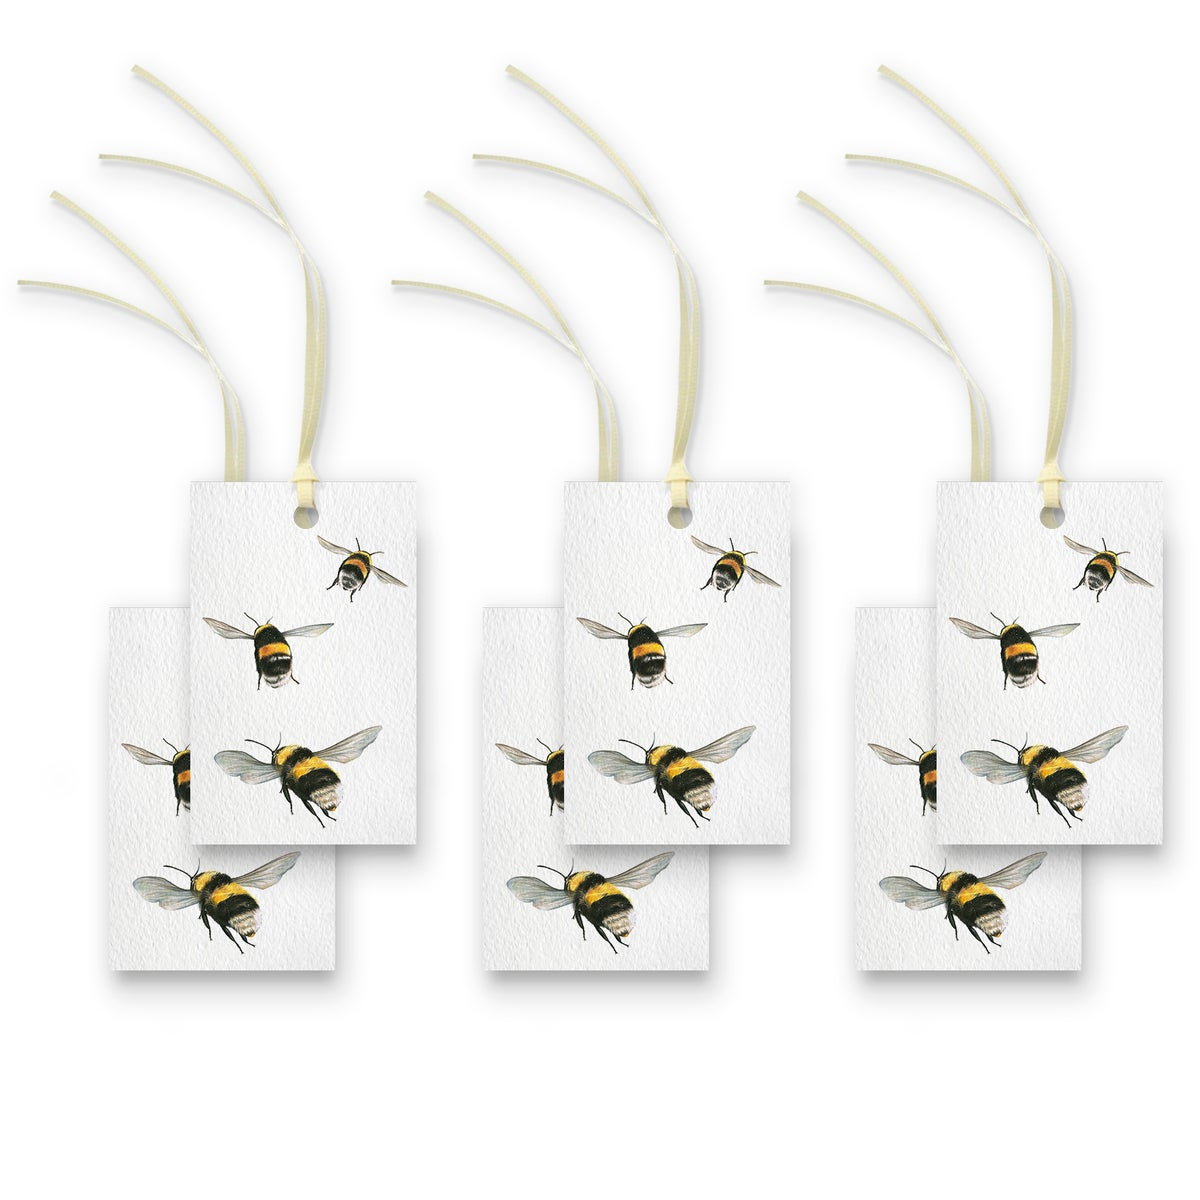 Image of Bumble bees Gift Tags - Set of 6